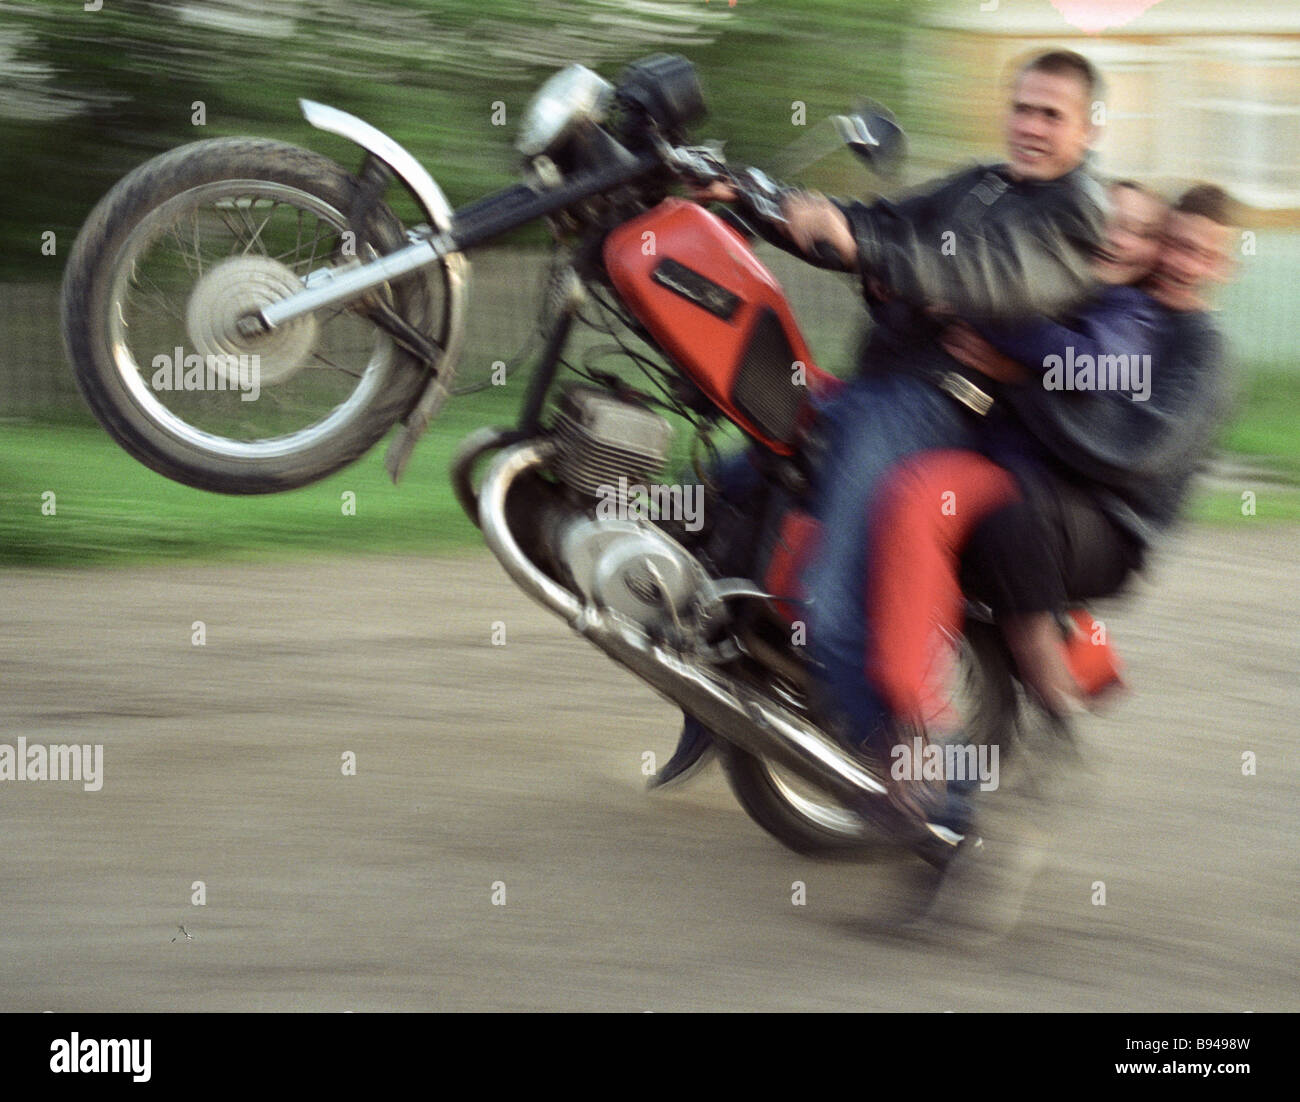 Village bikers - Stock Image